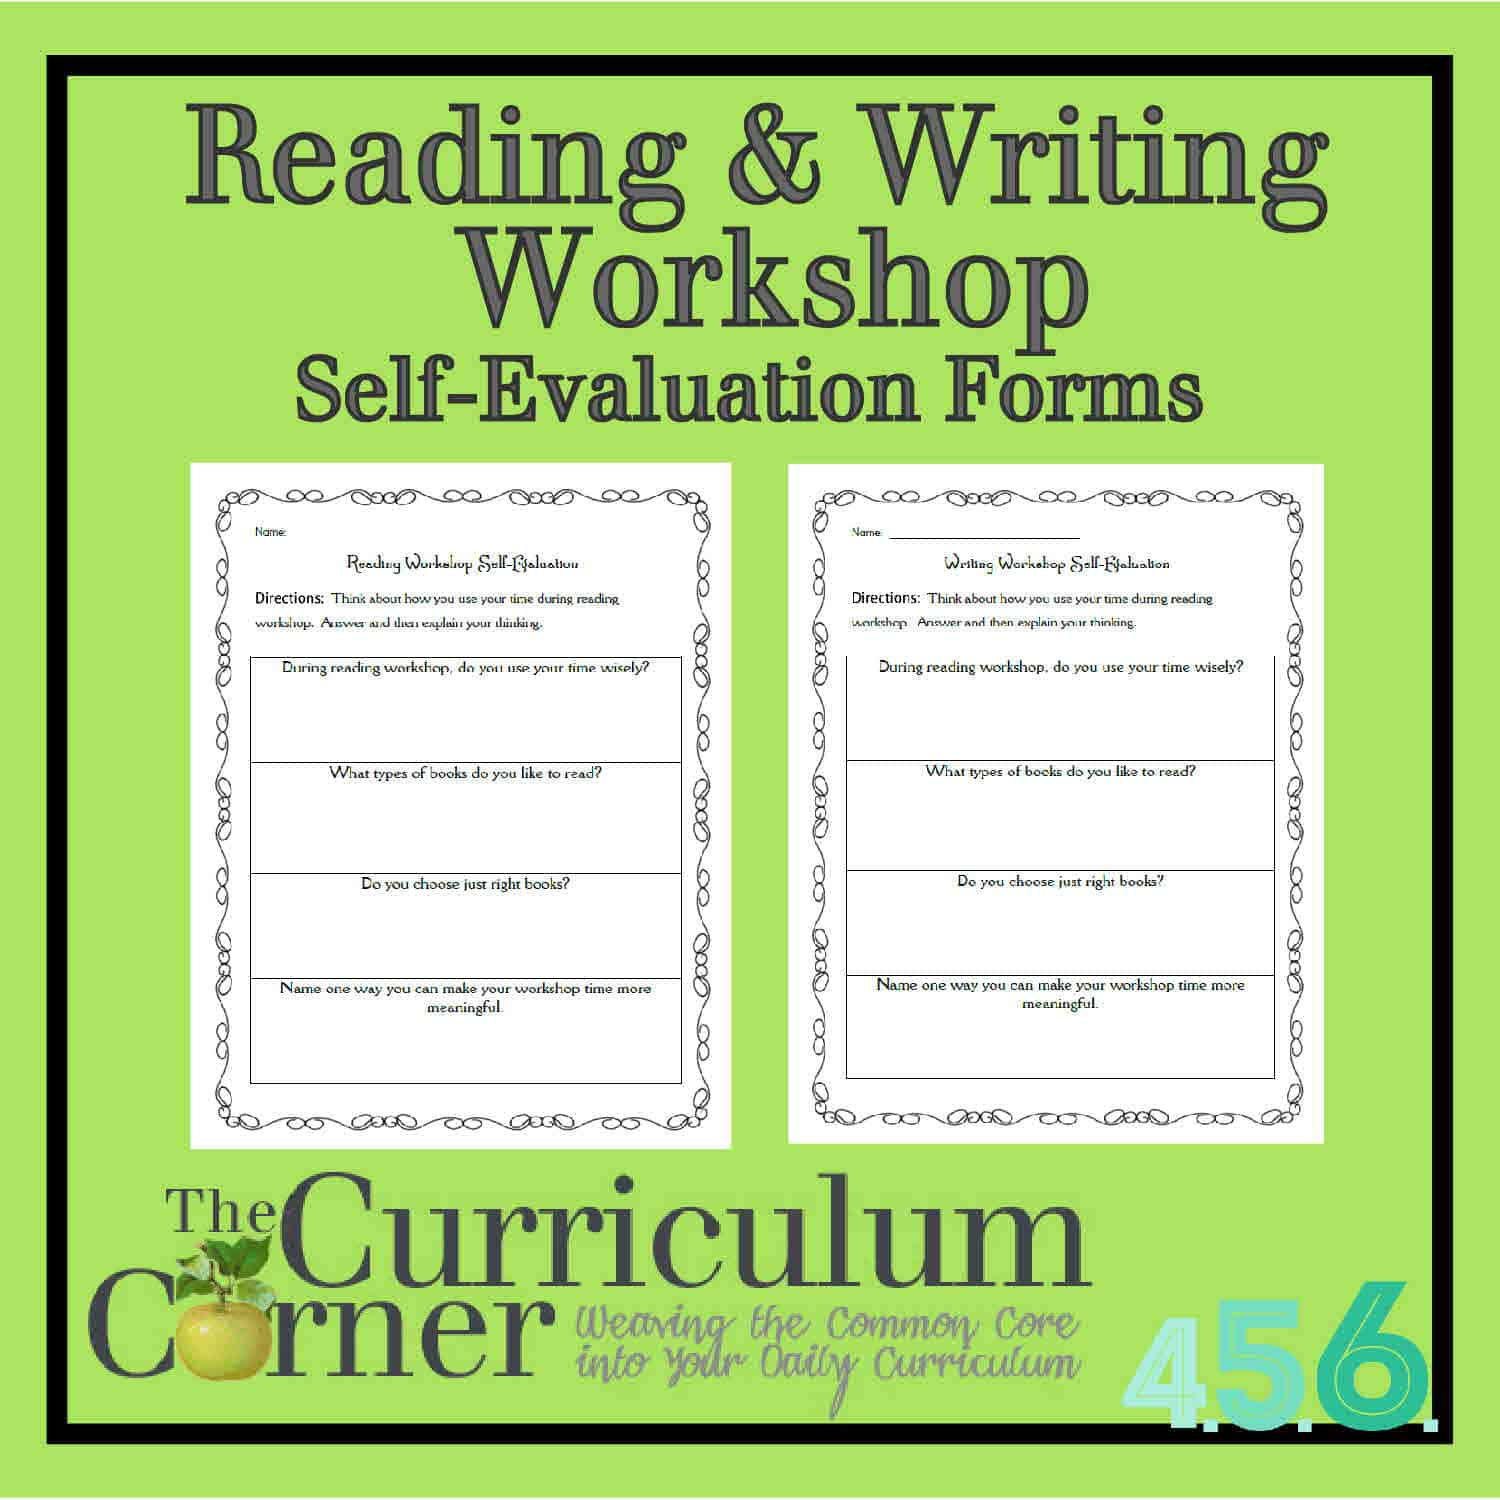 Reading & Writing Workshop Self Evaluation Forms The